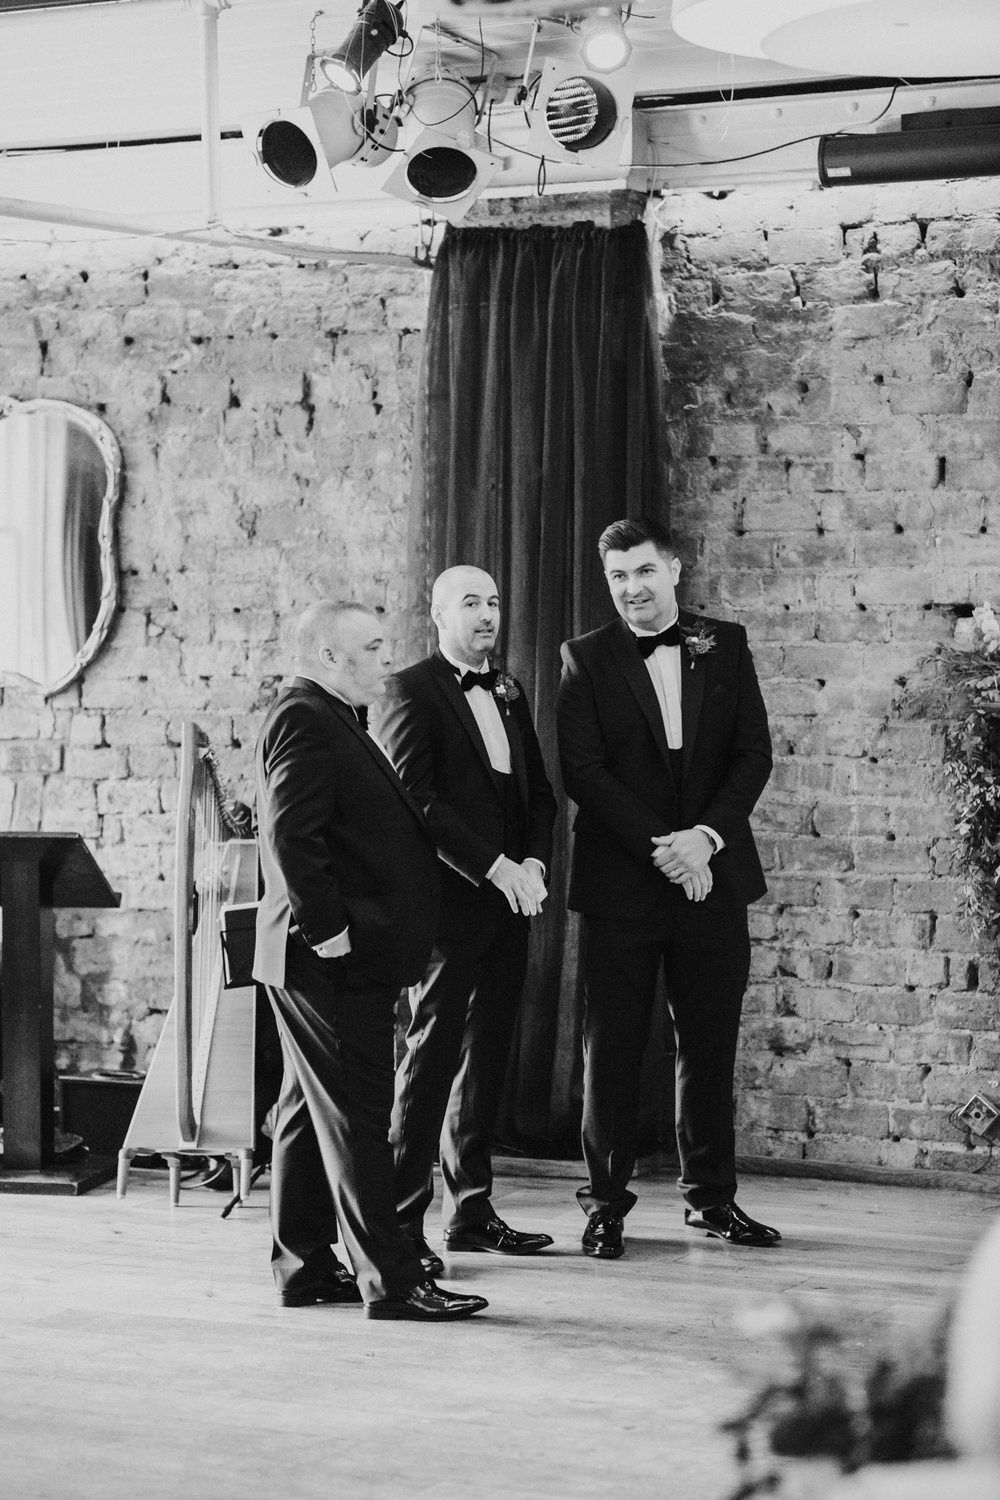 The happy groomsmen after the wedding ceremony at the 29 Private member club in Glasgow